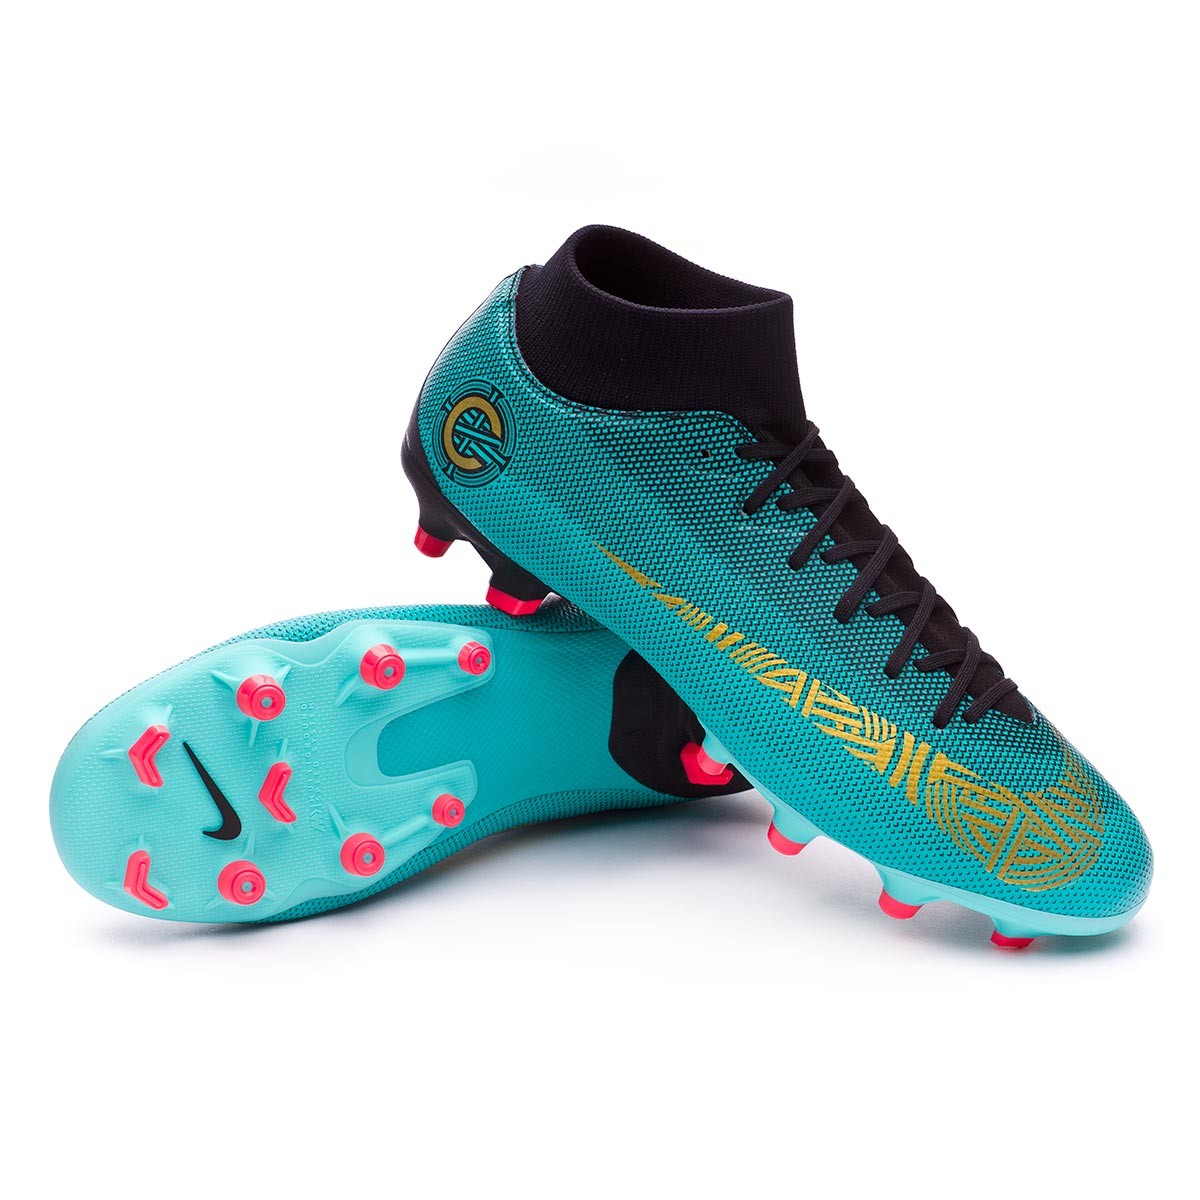 bc021f92f9fe Nike Mercurial Superfly VI Academy CR7 MG Football Boots. Clear jade-Metallic  vivid gold-Black ...